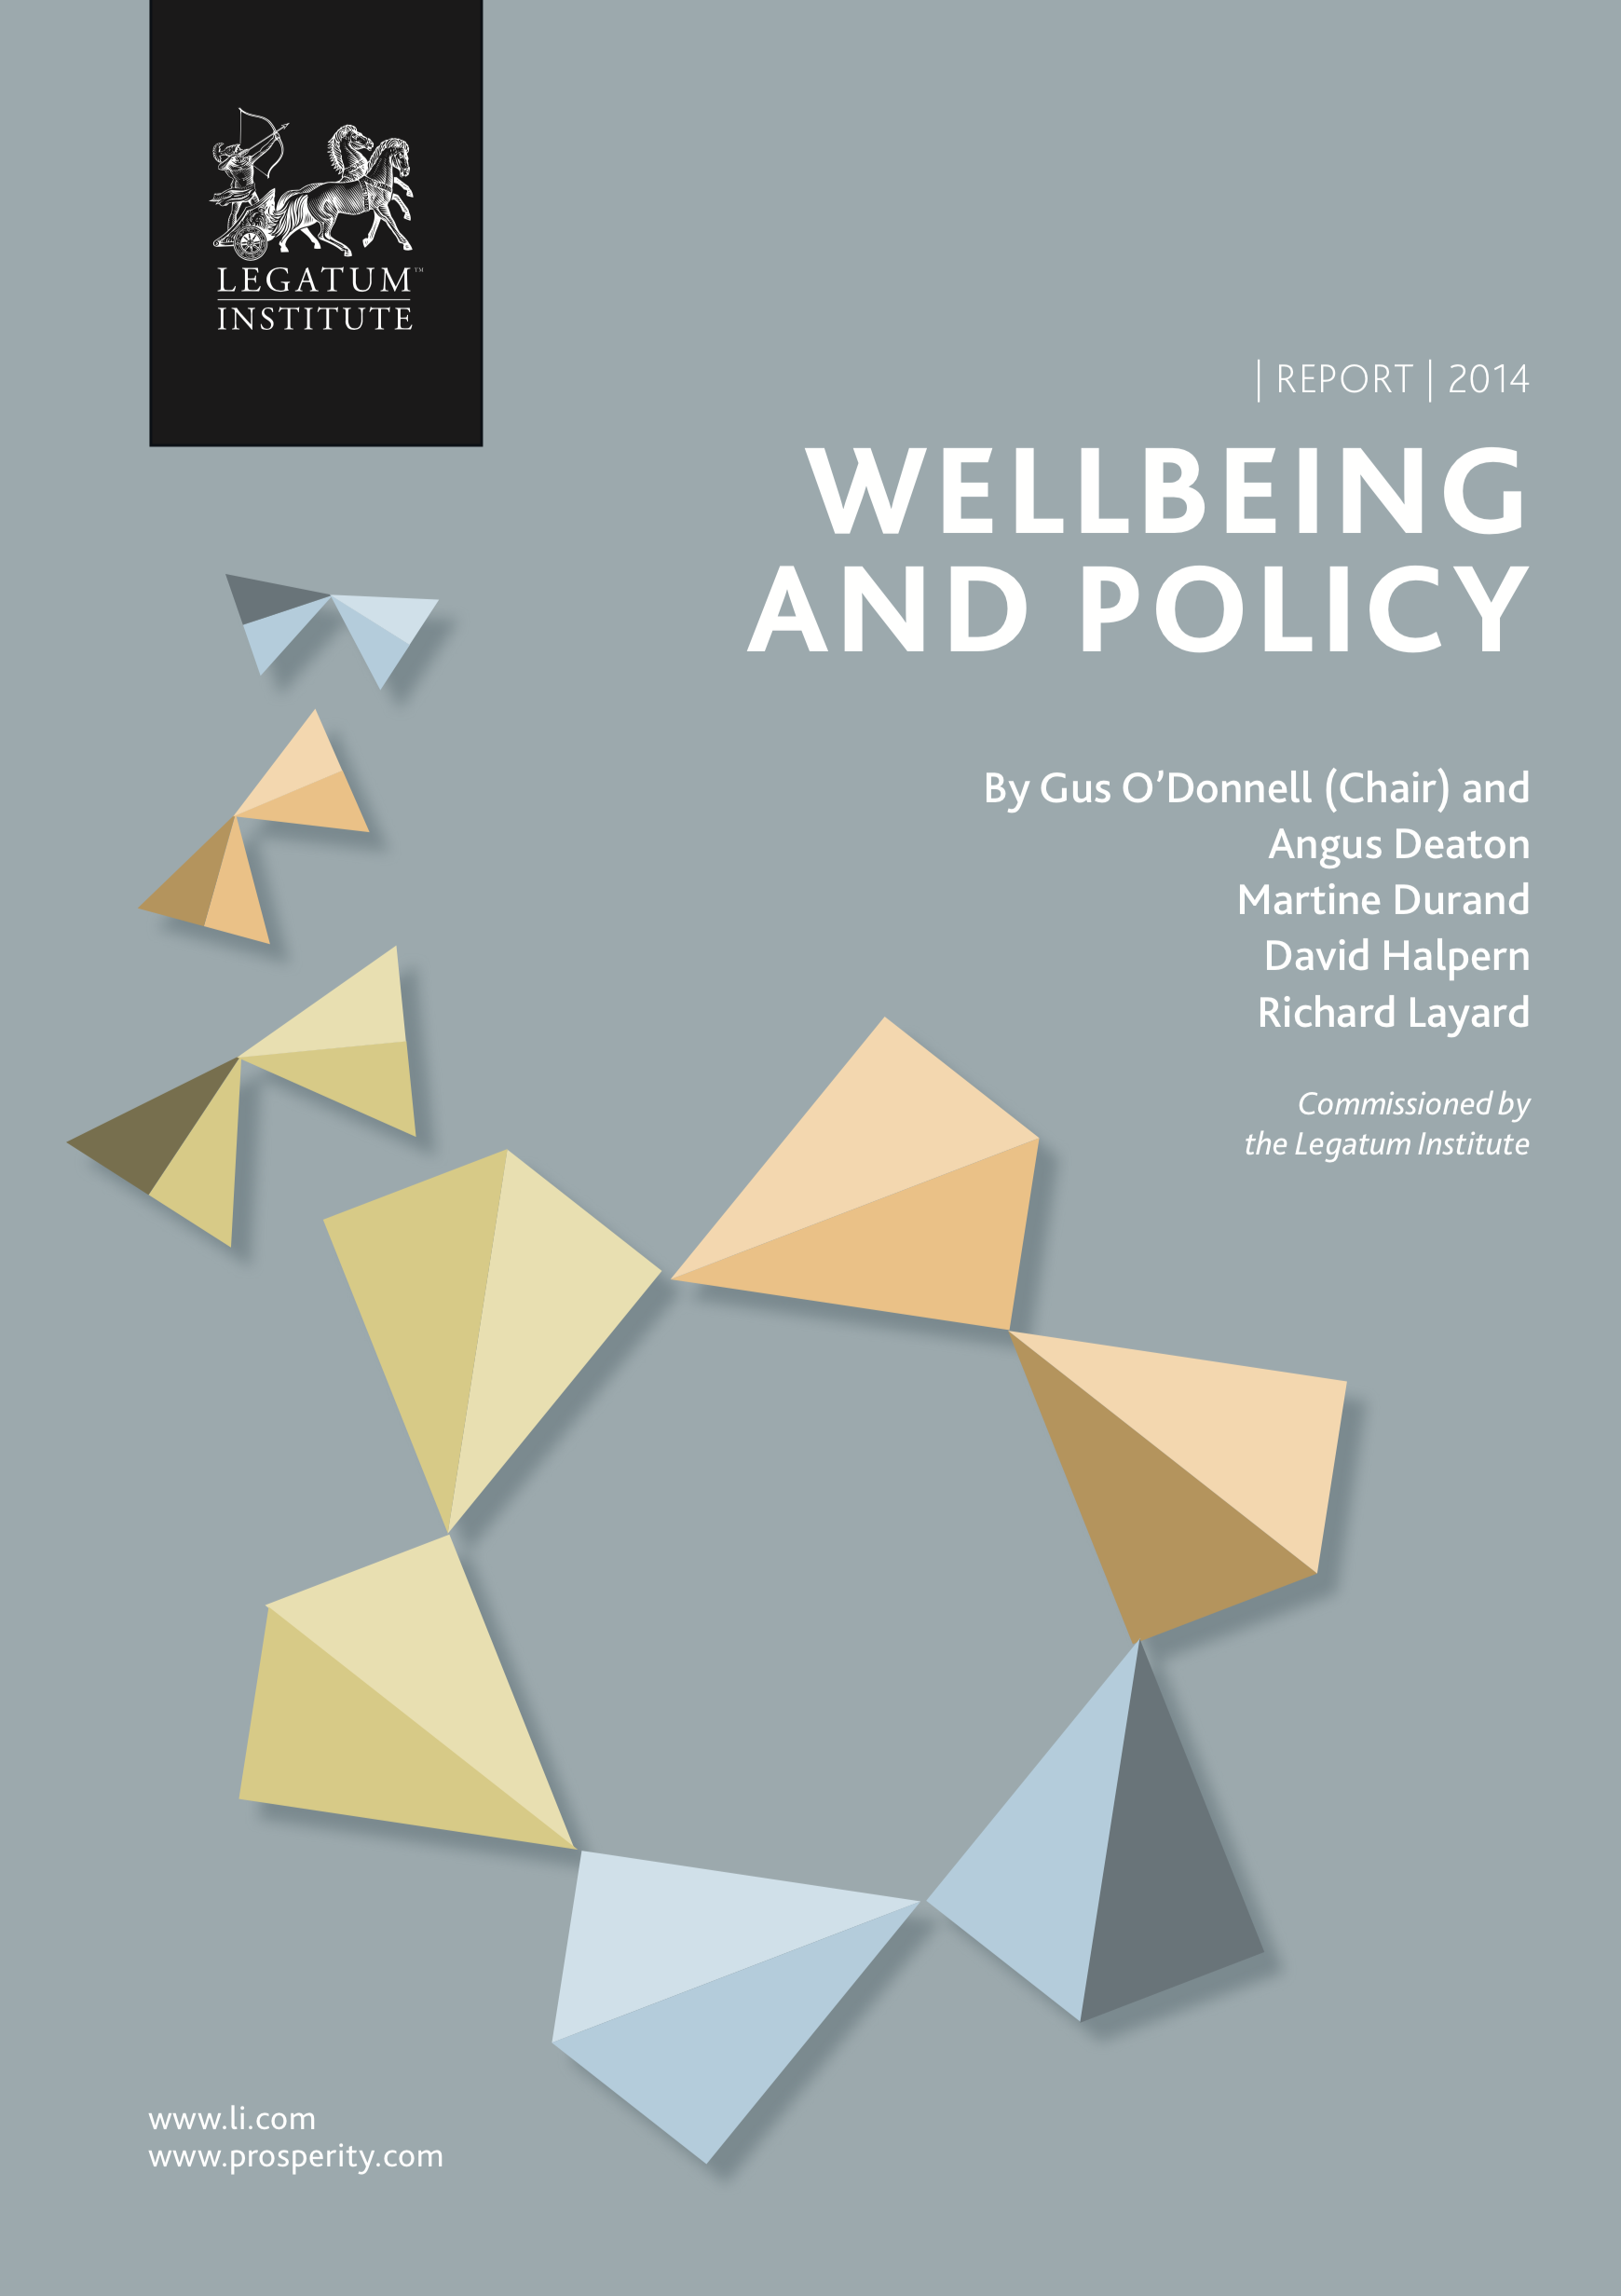 Commission on wellbeing and policy report